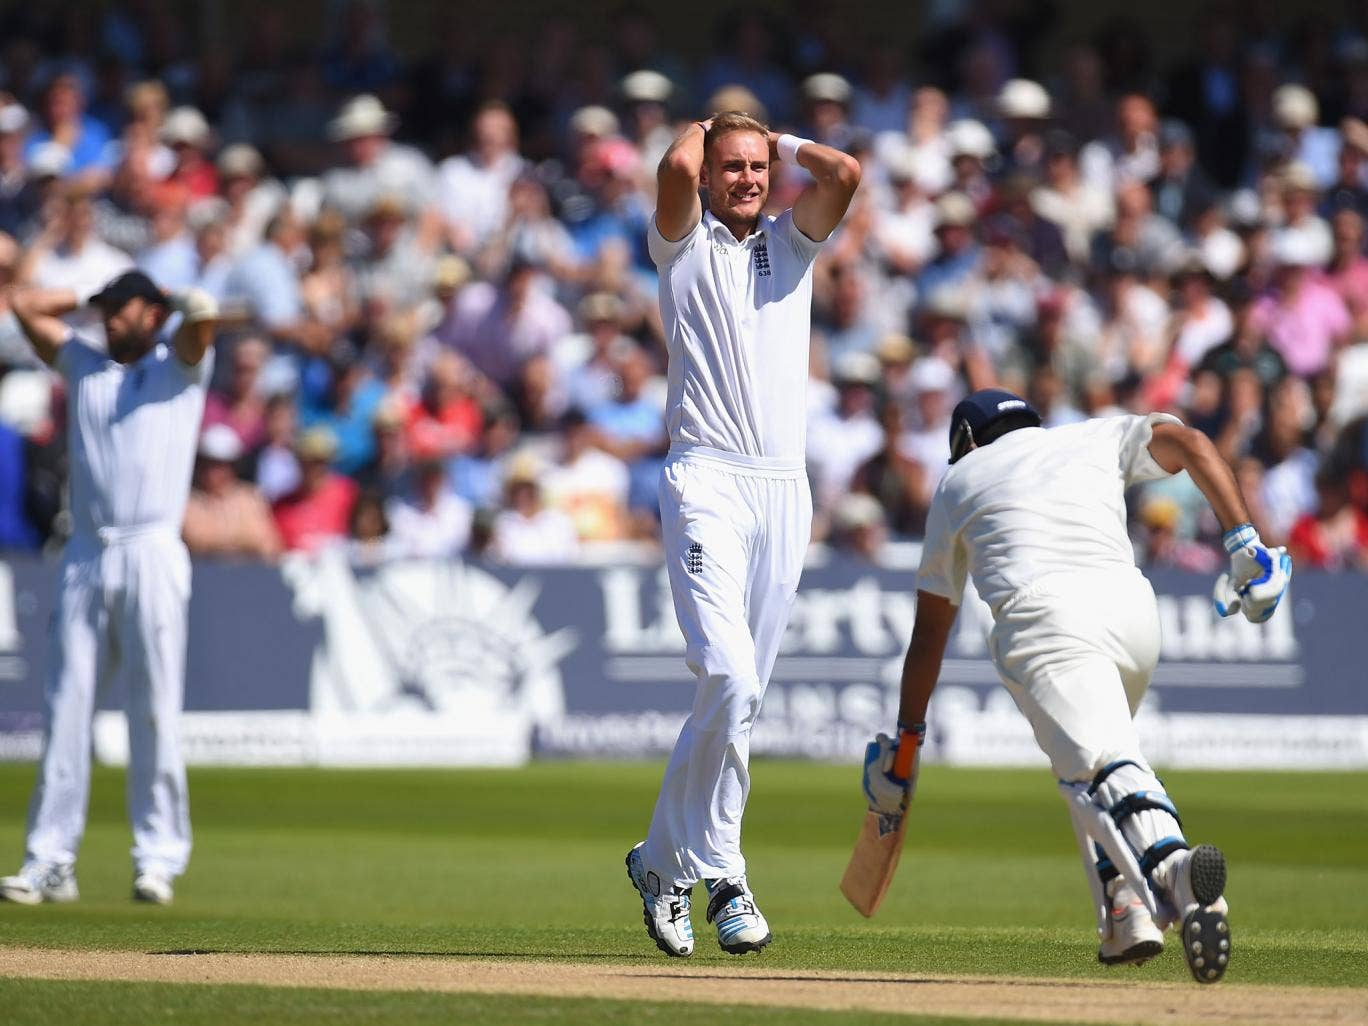 Stuart Broad has asked England fans to back their struggling captain Alastair Cook